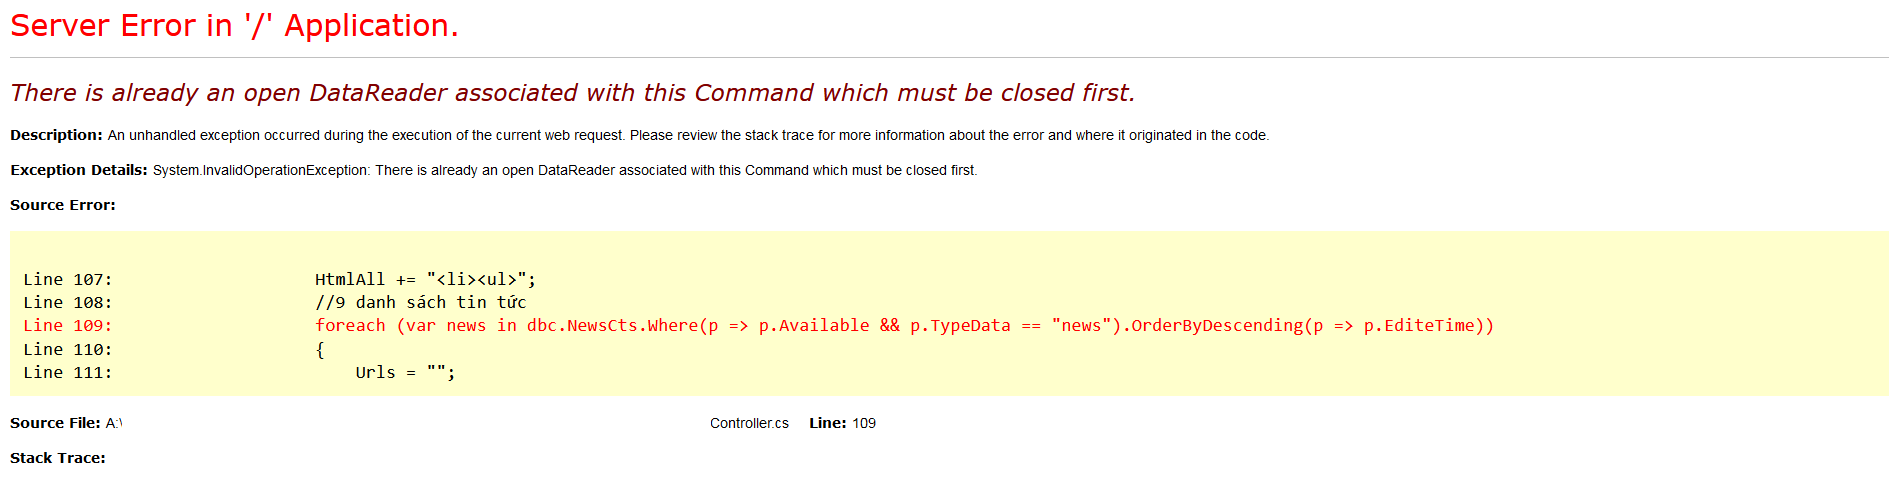 loi-there-is-already-an-open-datareader-associated-with-this-command-which-must-be-closed-first.png